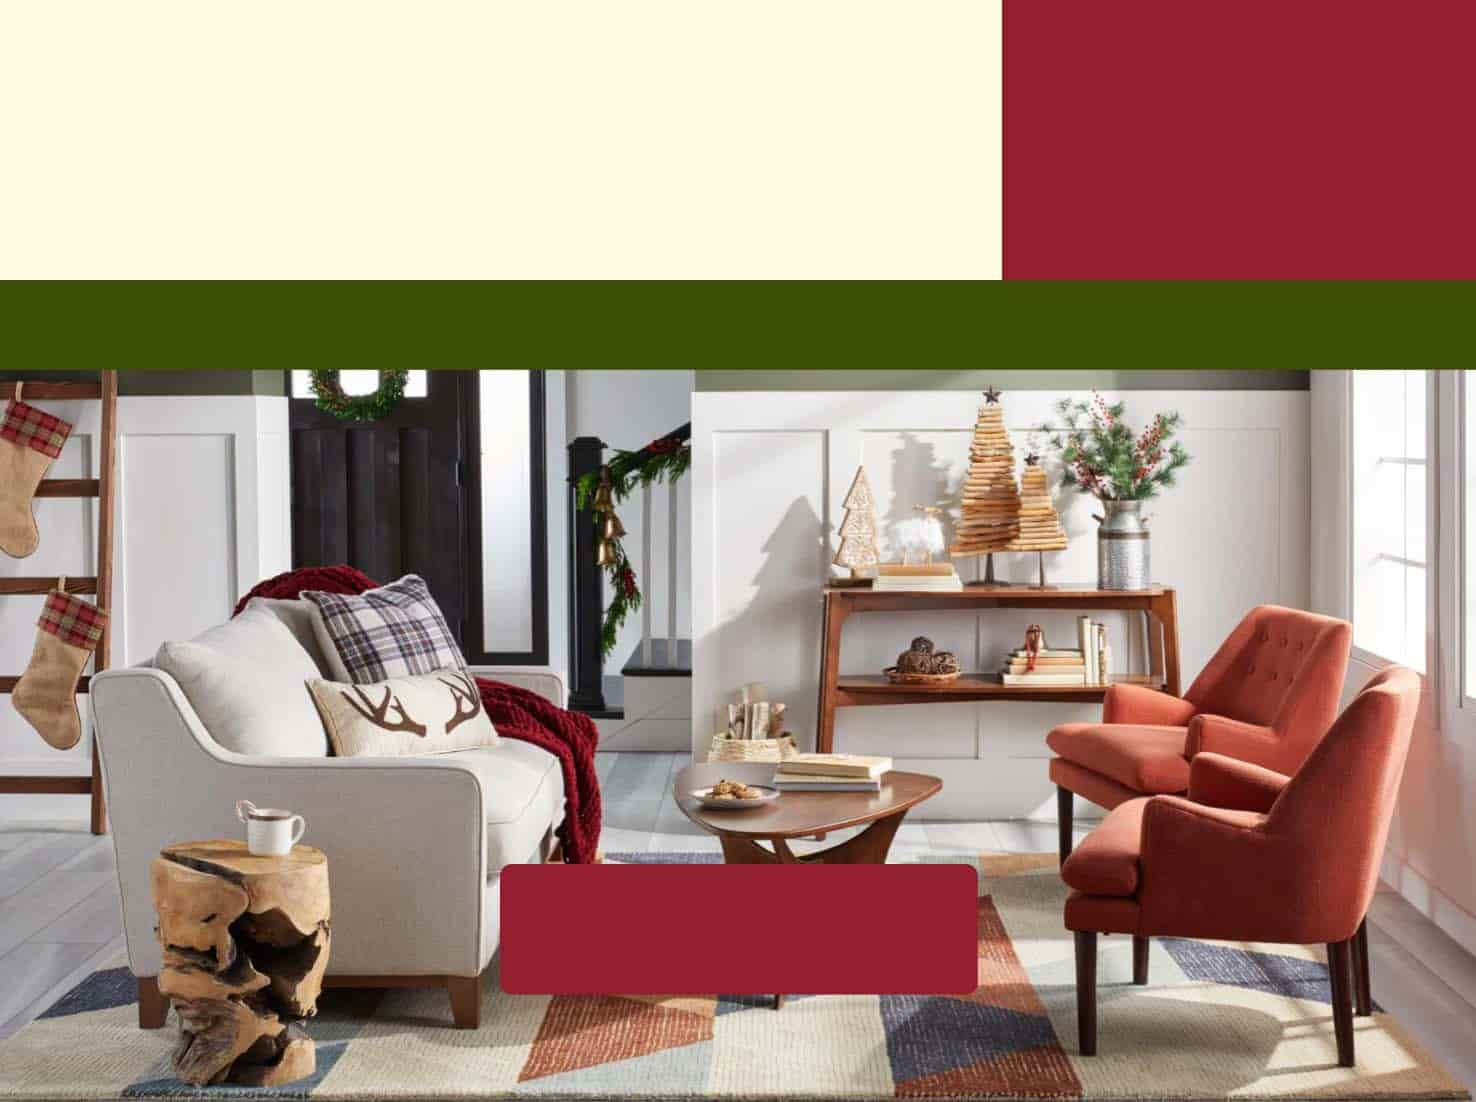 Holiday Home Sale, Free Shipping on EVERYTHING! 70% off 1000s of Items*, Shop Now.